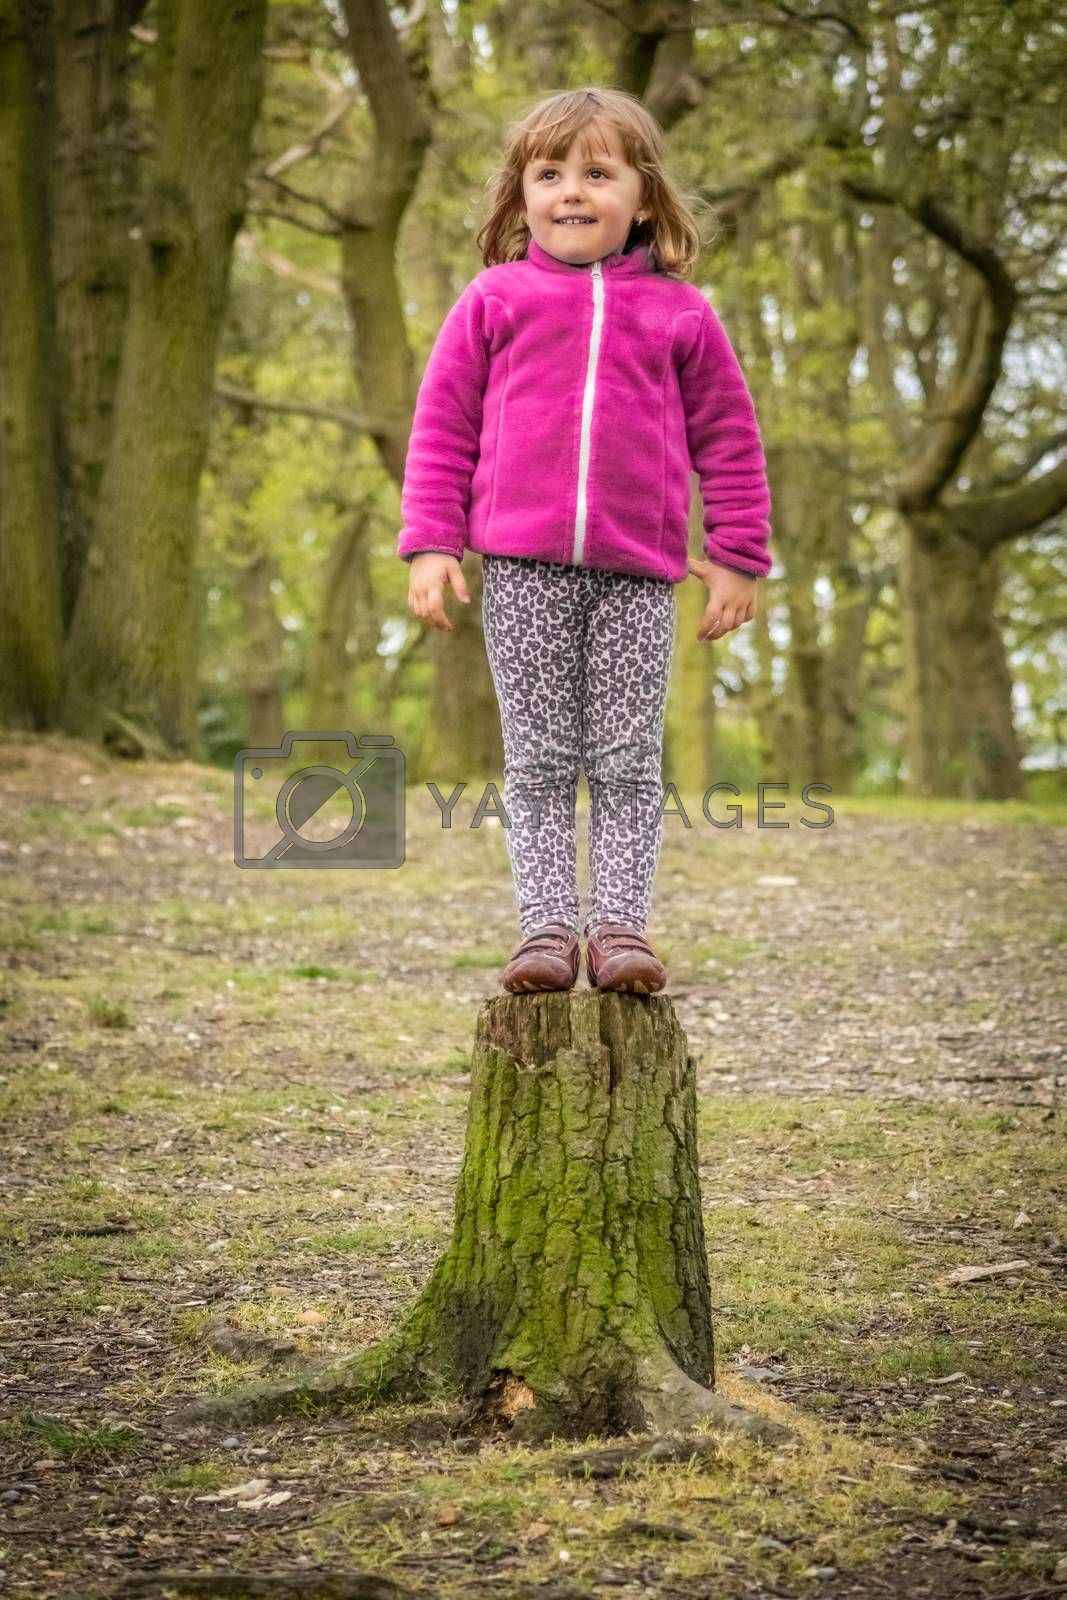 Little girl getting ready to jump from the cut tree in the forest